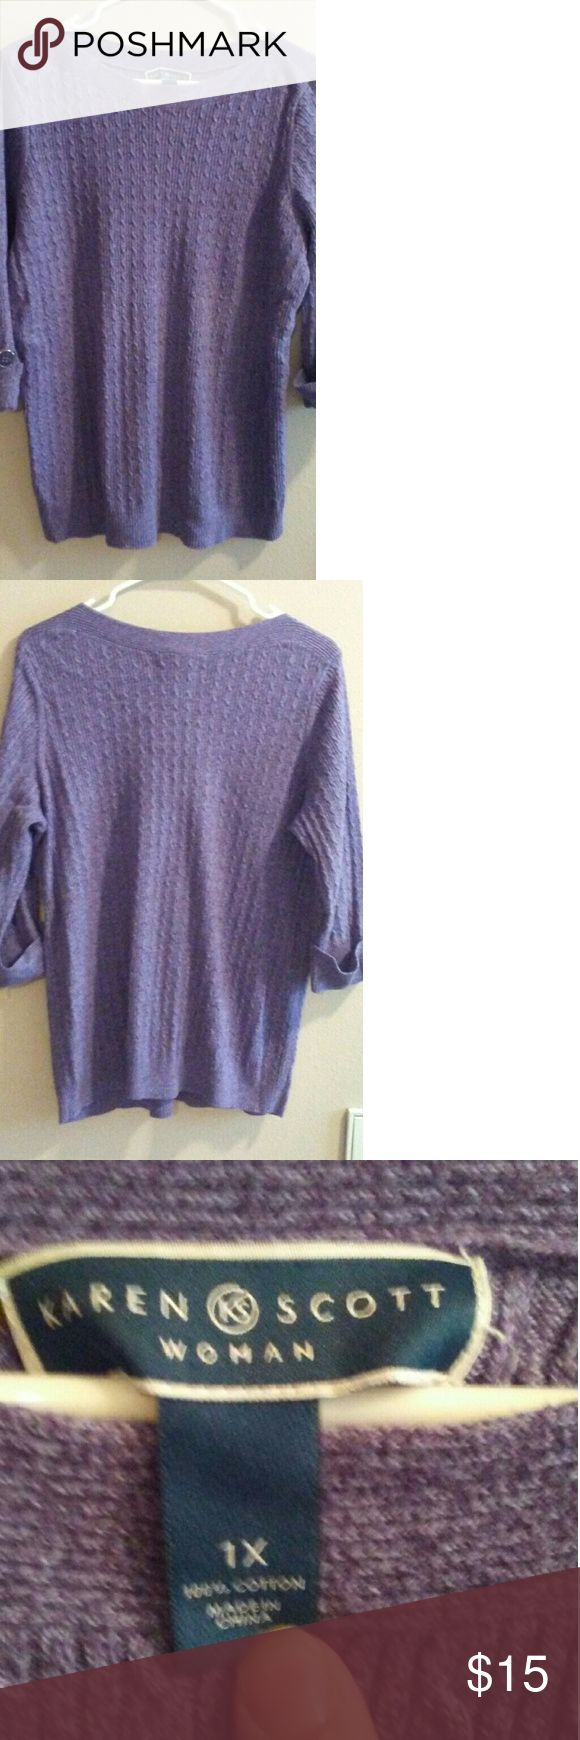 Purple sweater This is a very flattering purple Karen Scott sweater with cuffed sleeves decorated with buttons . It does have a small, barely noticeable stain on the front as shown in the fifth picture. Karen Scott Sweaters Crew & Scoop Necks